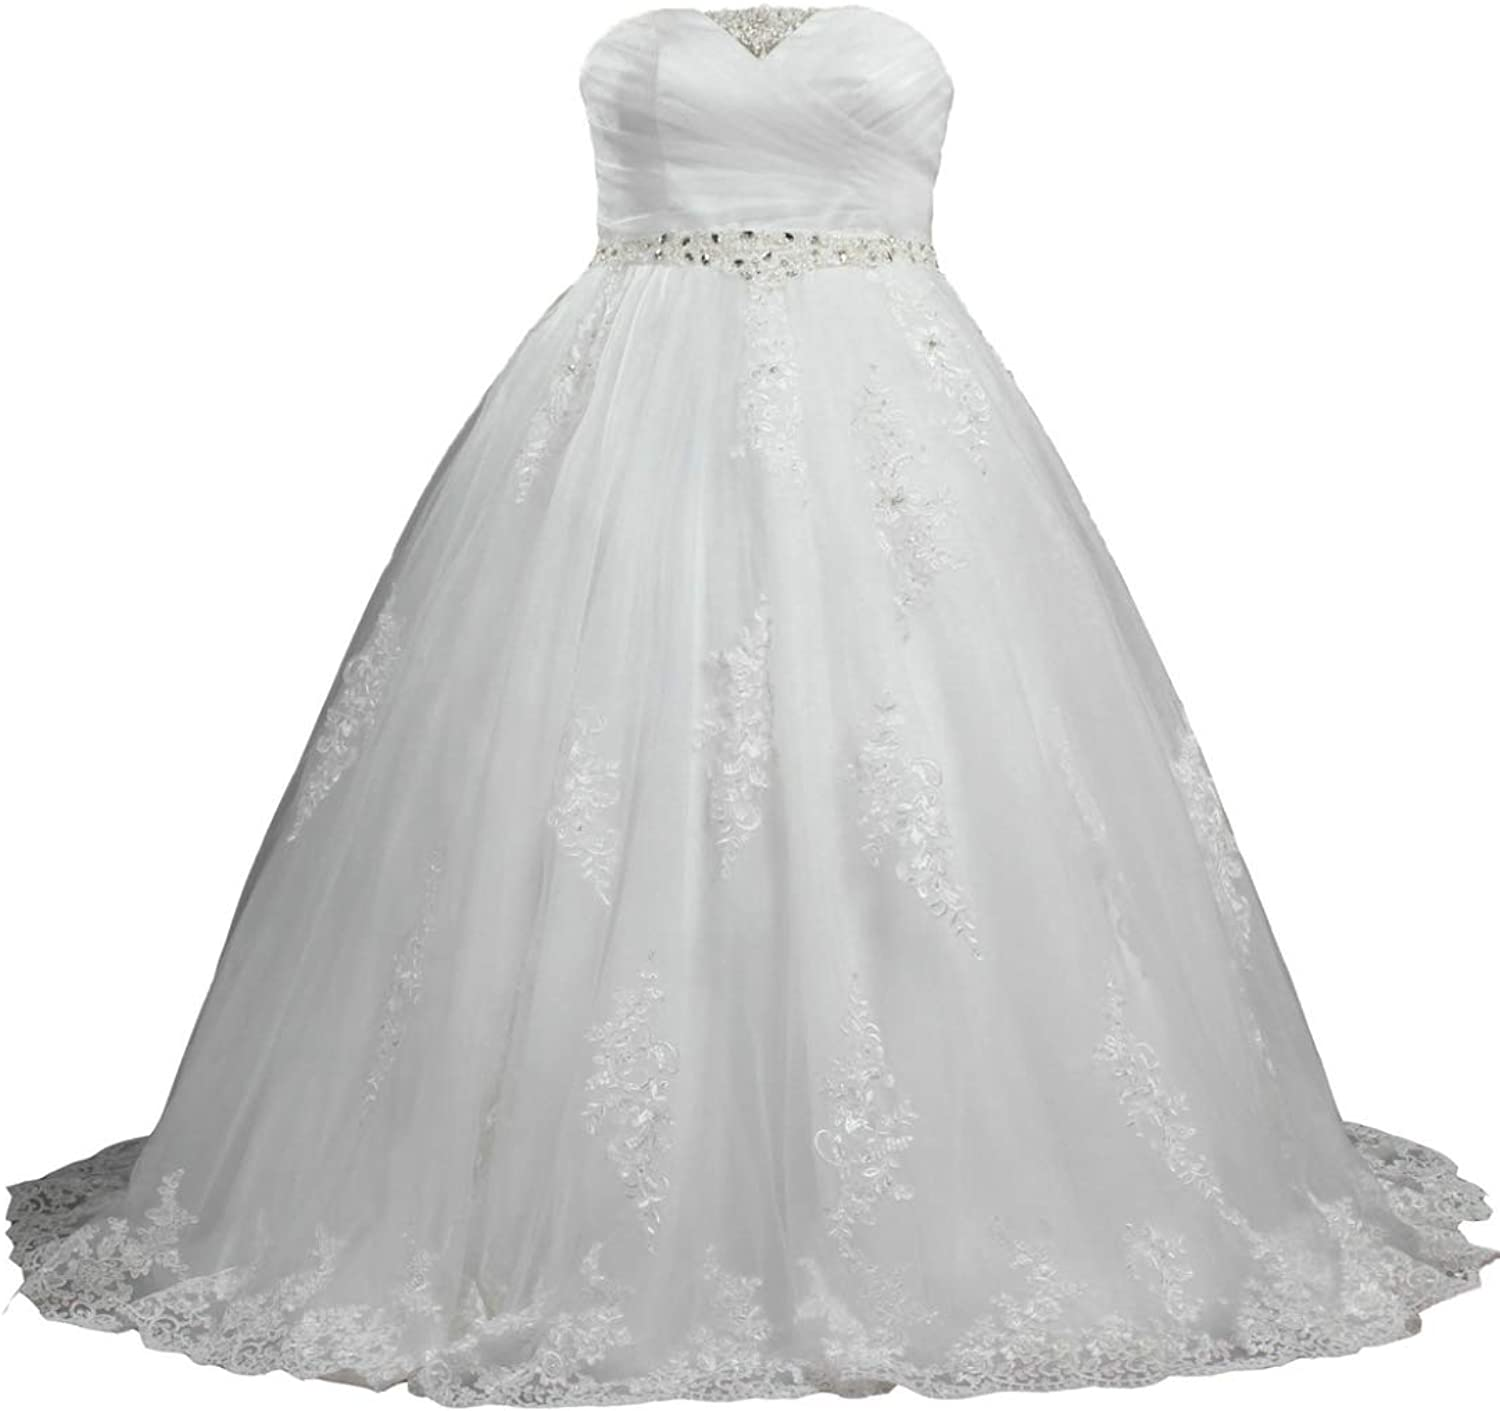 ANTS Women's Plus Size Strapless Lace Tulle Wedding Dresses Bridal Gowns